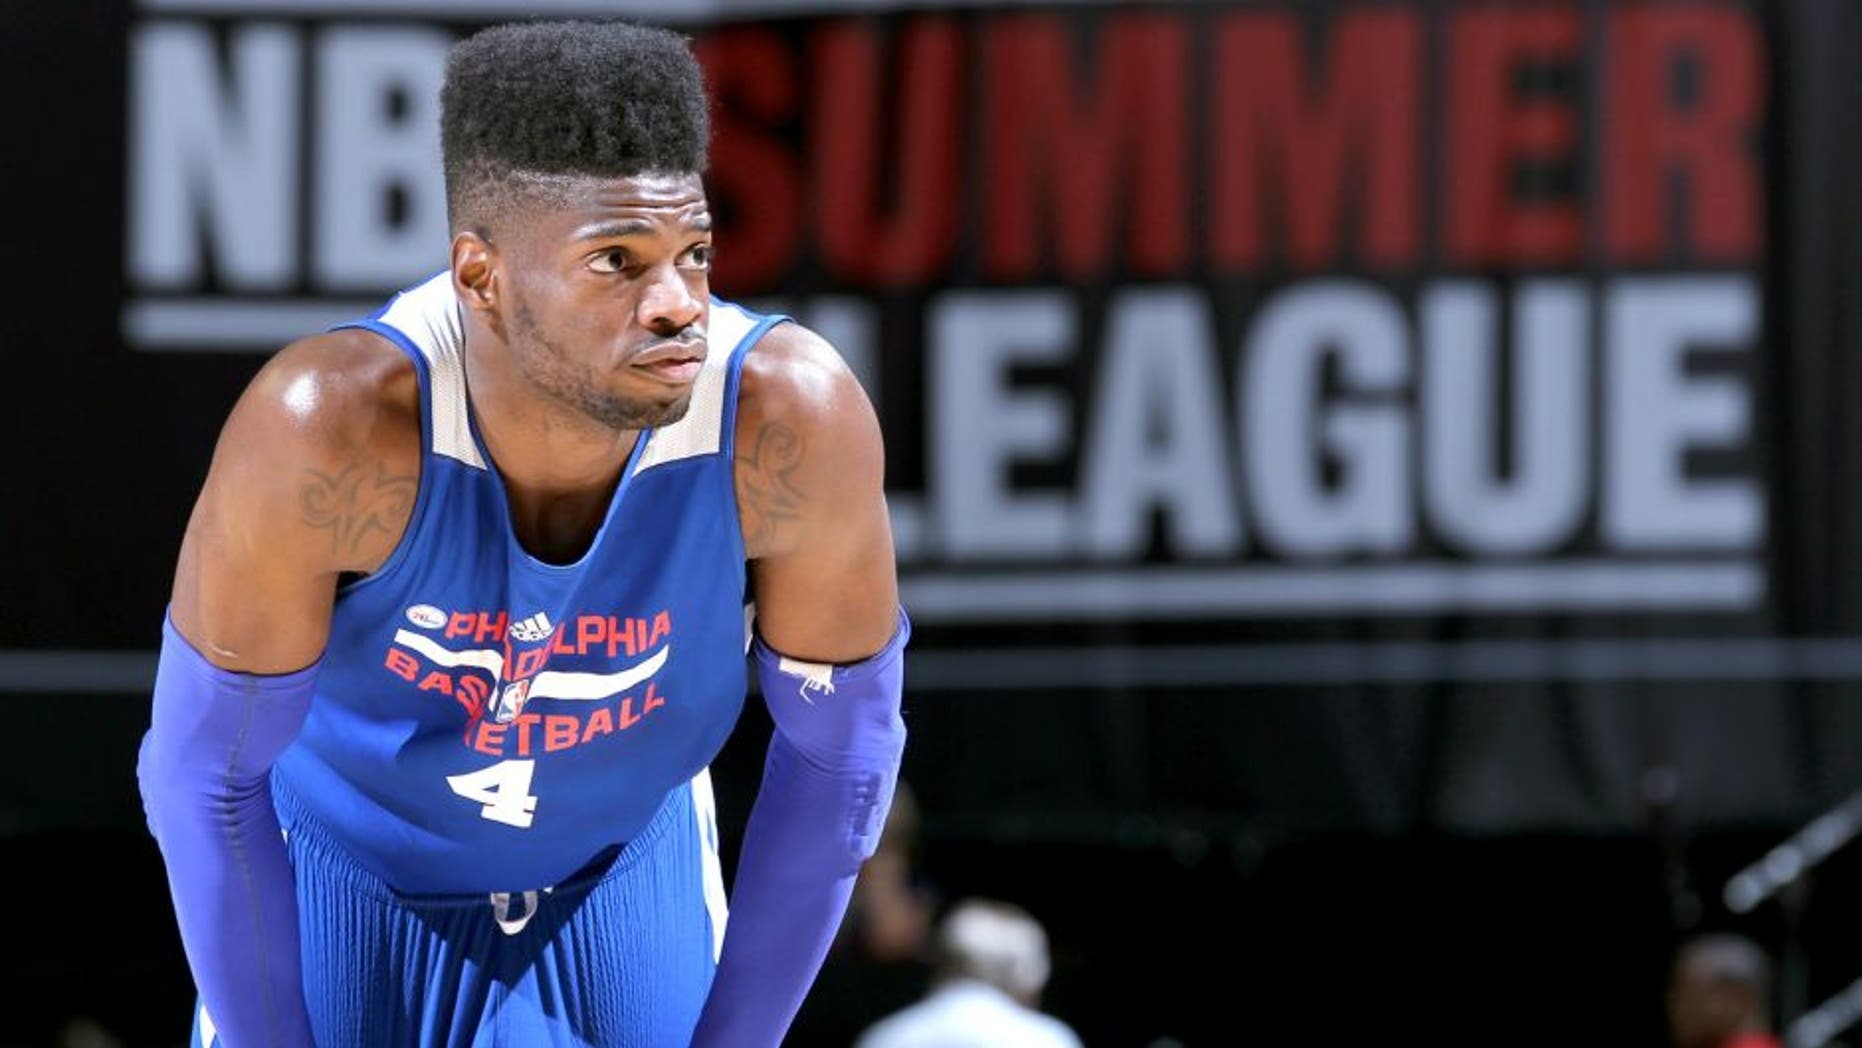 LAS VEGAS, NV - JULY 16: Nerlens Noel #4 of the Philadelphia 76ers during the game against the Chicago Bulls on July 16, 2014 at the Cox Pavilion in Las Vegas, Nevada. NOTE TO USER: User expressly acknowledges and agrees that, by downloading and or using this photograph, User is consenting to the terms and conditions of the Getty Images License Agreement. Mandatory Copyright Notice: Copyright 2014 NBAE (Photo by Jack Arent/NBAE via Getty Images)